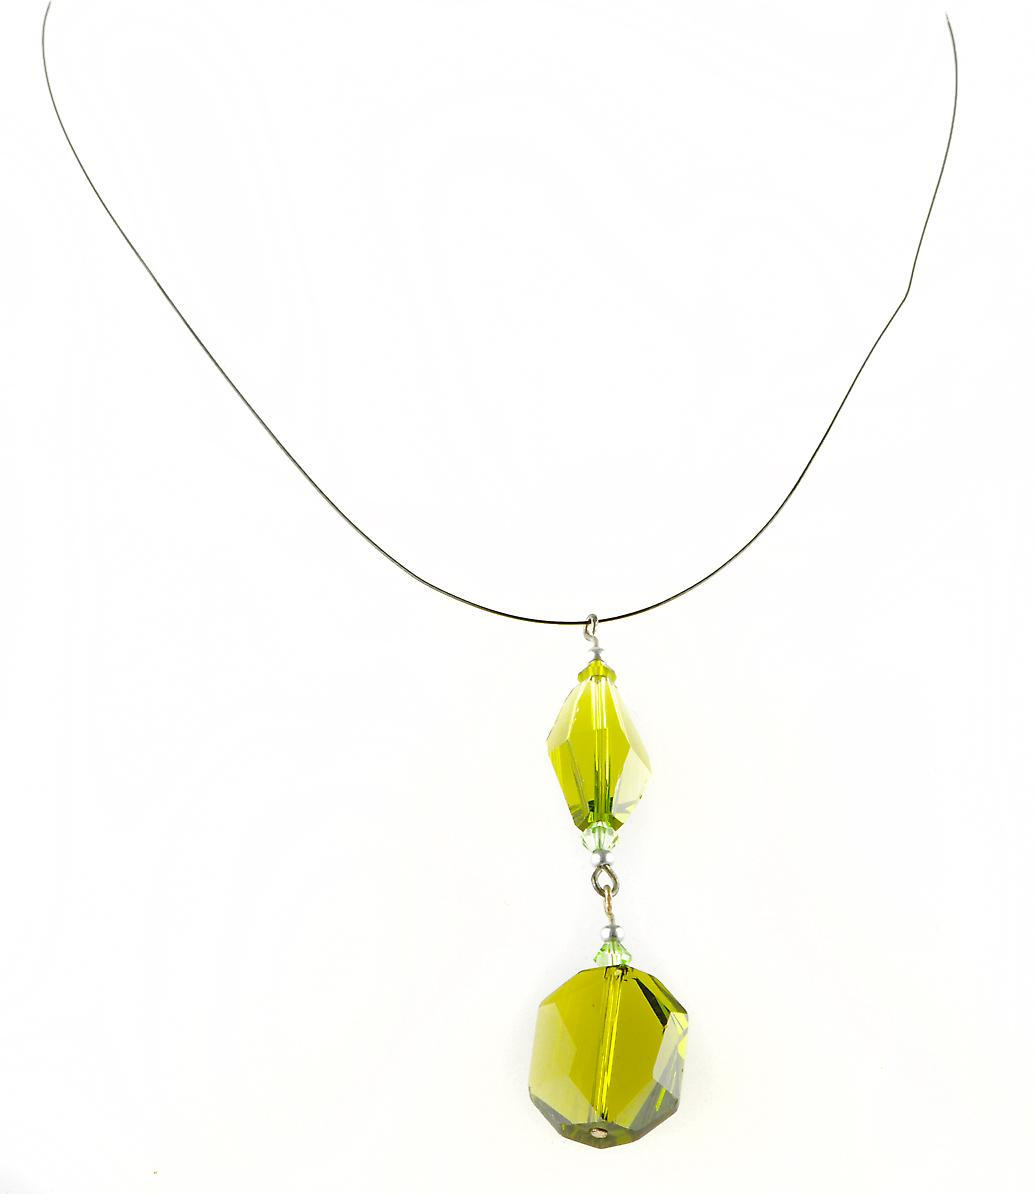 Waooh - Fashion Jewellery - WJ0315 - Necklace with Swarovski Green Transparent